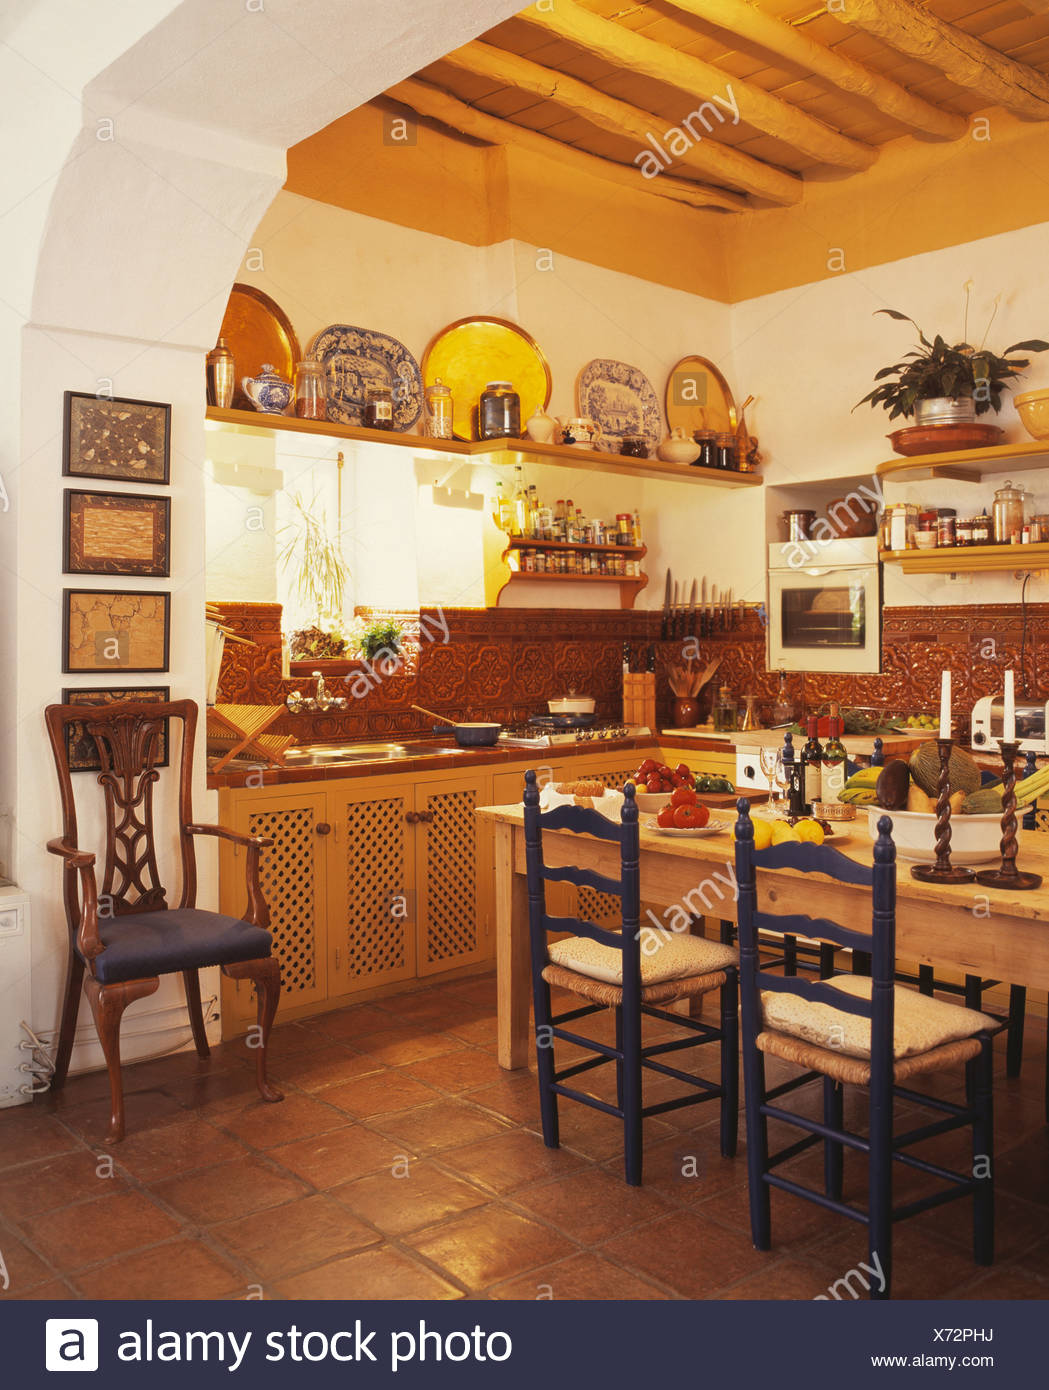 Ladderback chairs at wooden table in Spanish country kitchen with quarry tiled floor and beamed ceiling & Ladderback chairs at wooden table in Spanish country kitchen with ...